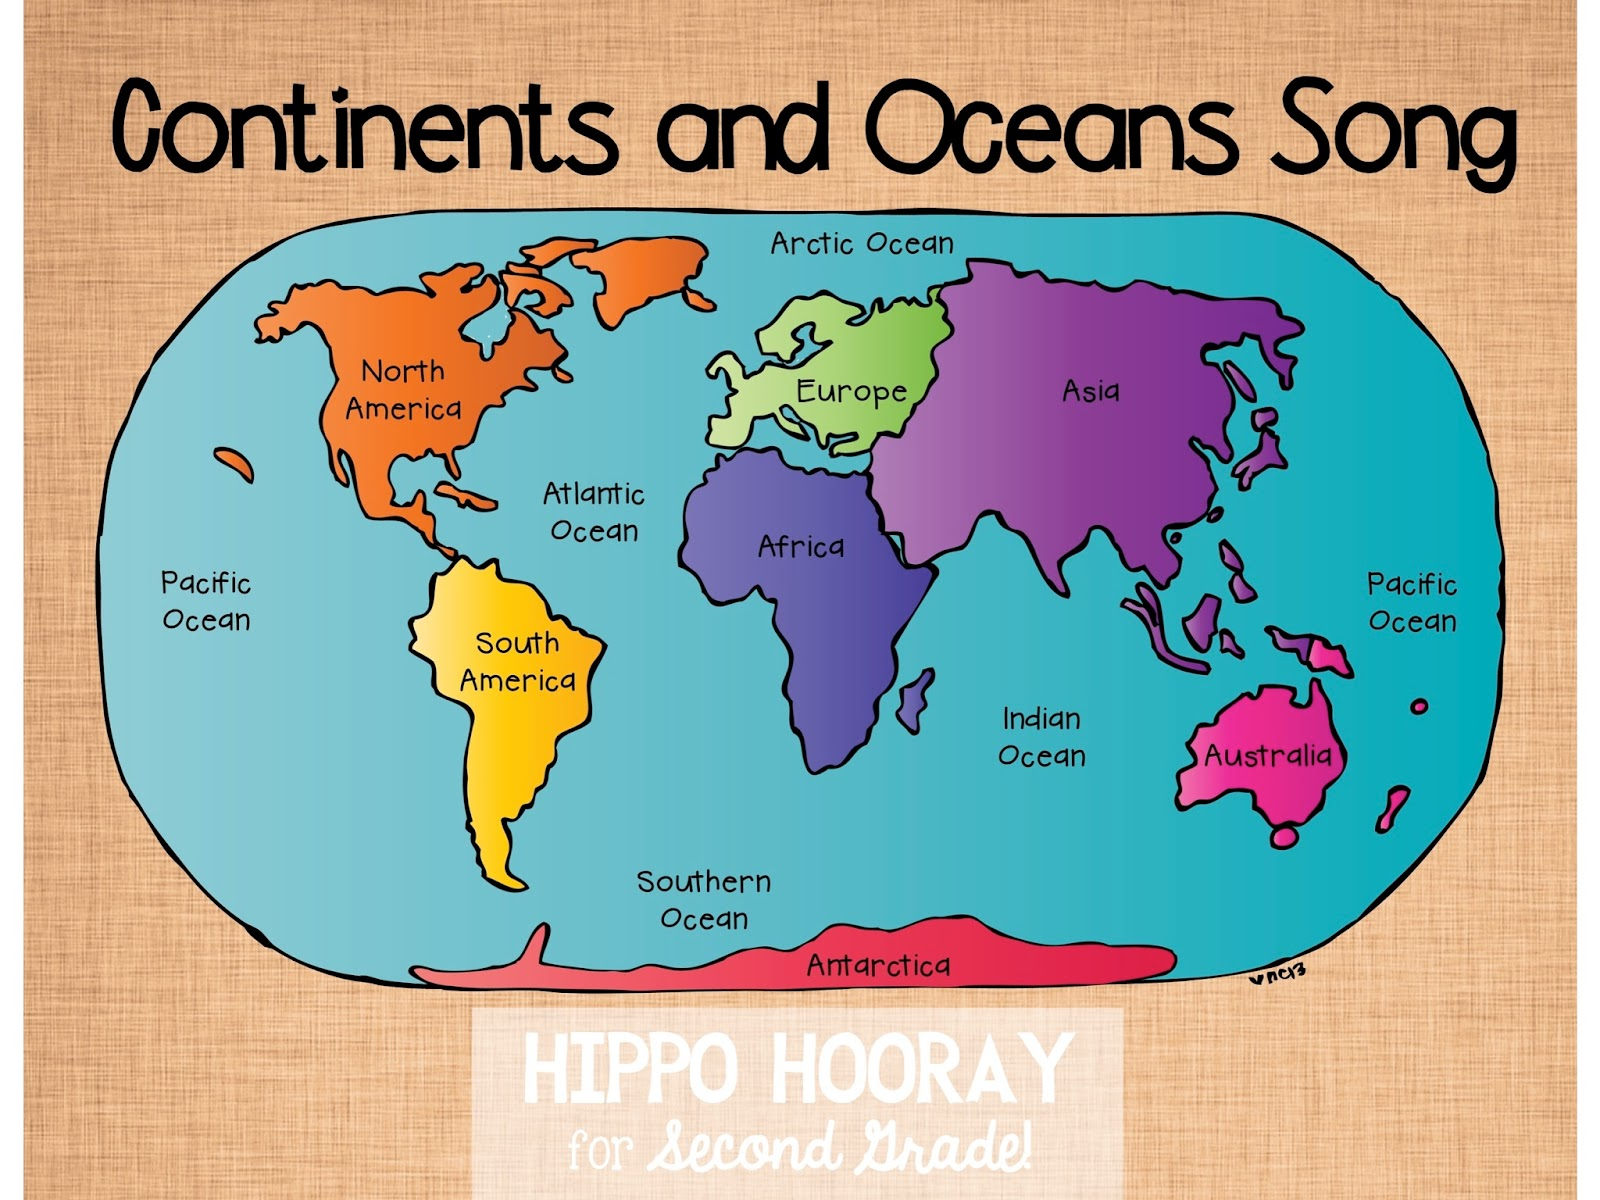 Continents/Ocean Song (and Video!) - Hippo Hooray for Second